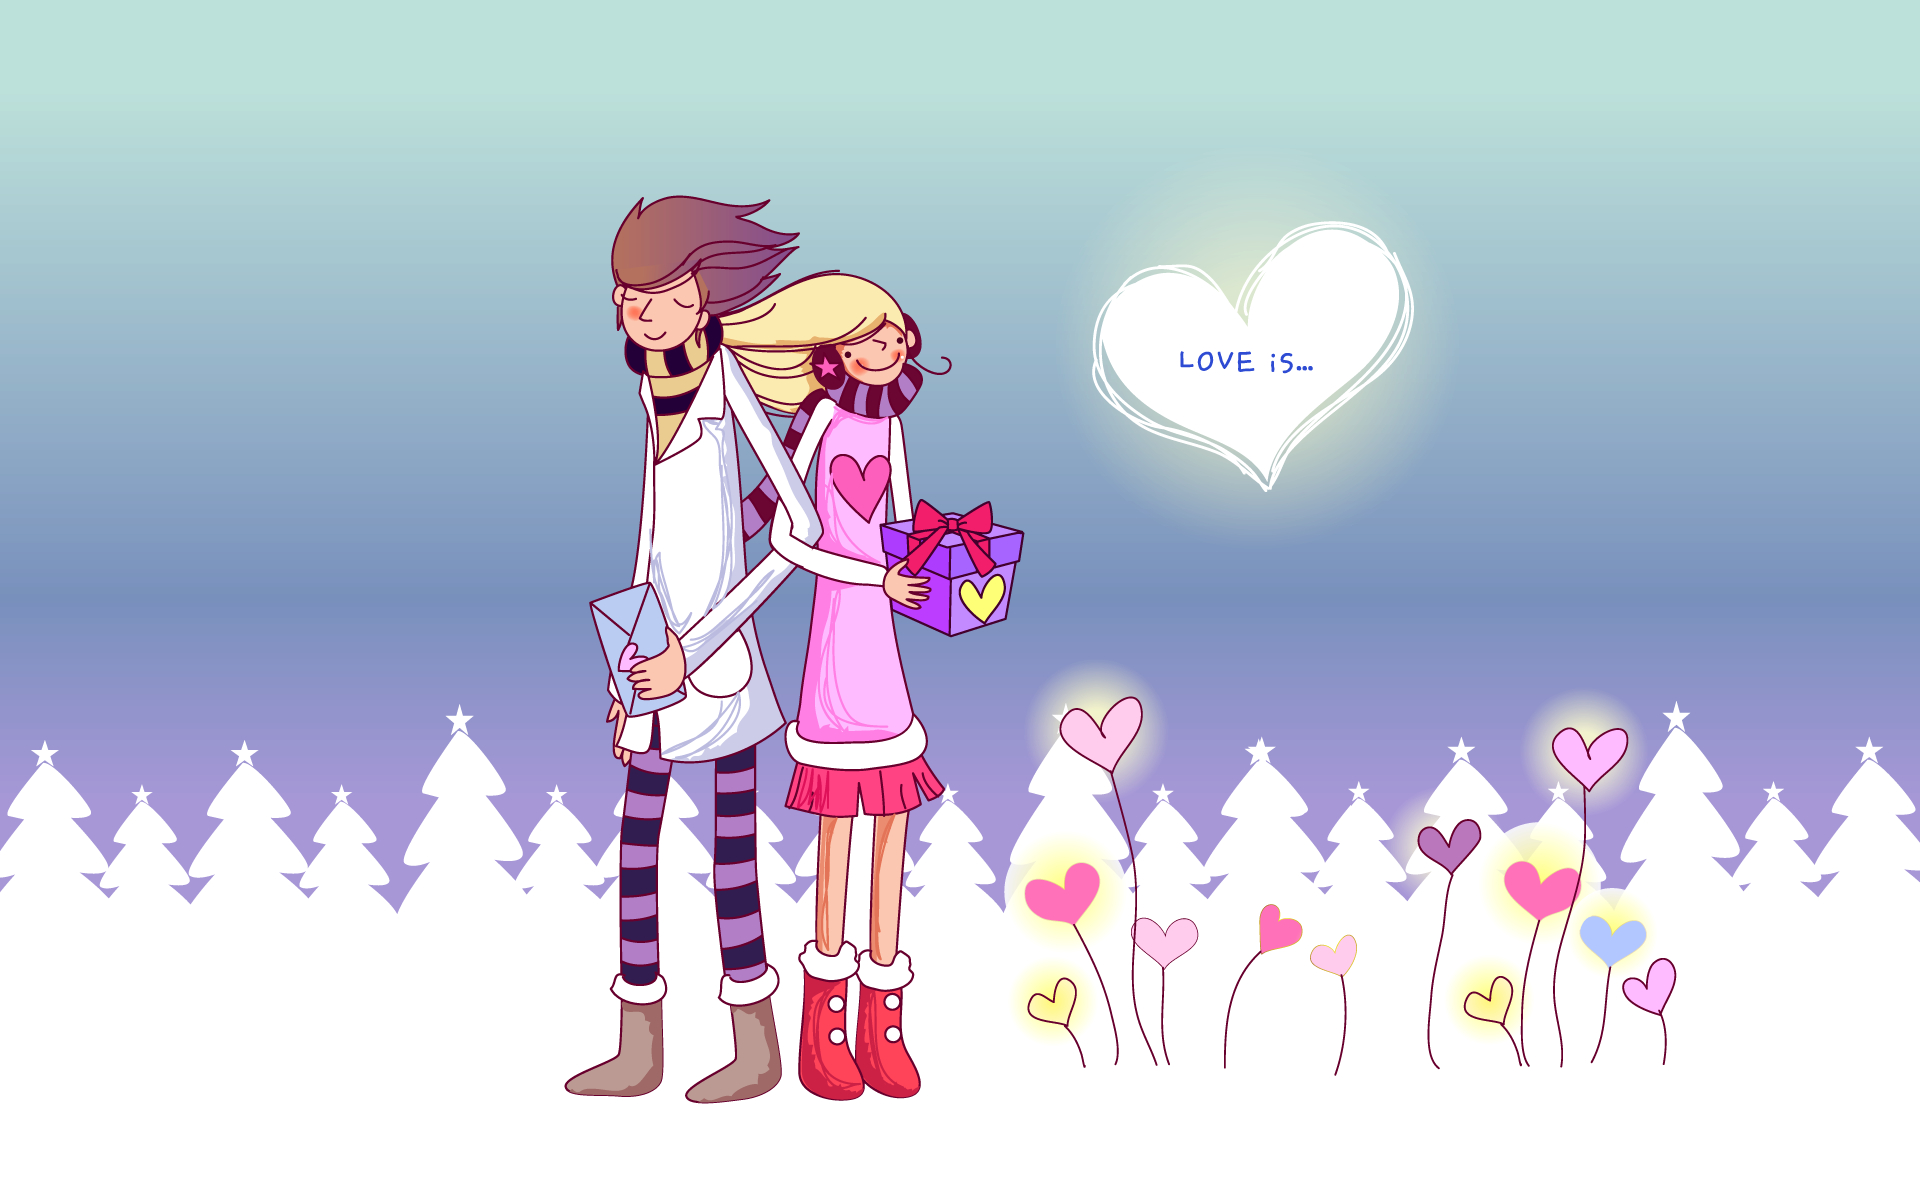 Love Wallpaper cartoon : Love cartoon Image - Wallpaper, High Definition, High ...